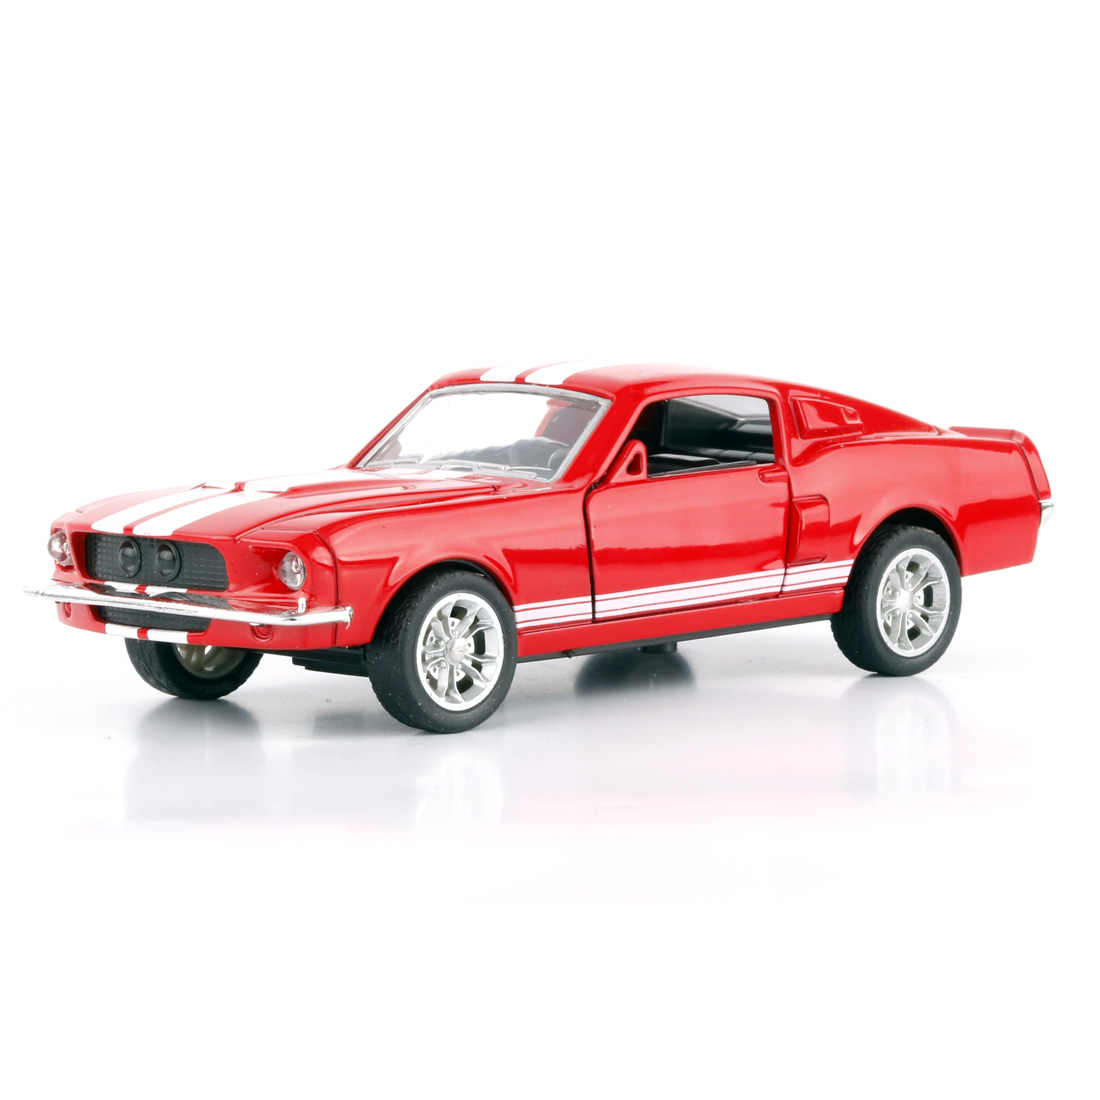 JMT Car GT500 1:32 Alloy Diecast Metal Pull Back Car Door Openable Mini Racing Sport Cars Toy for Kids Best Gift